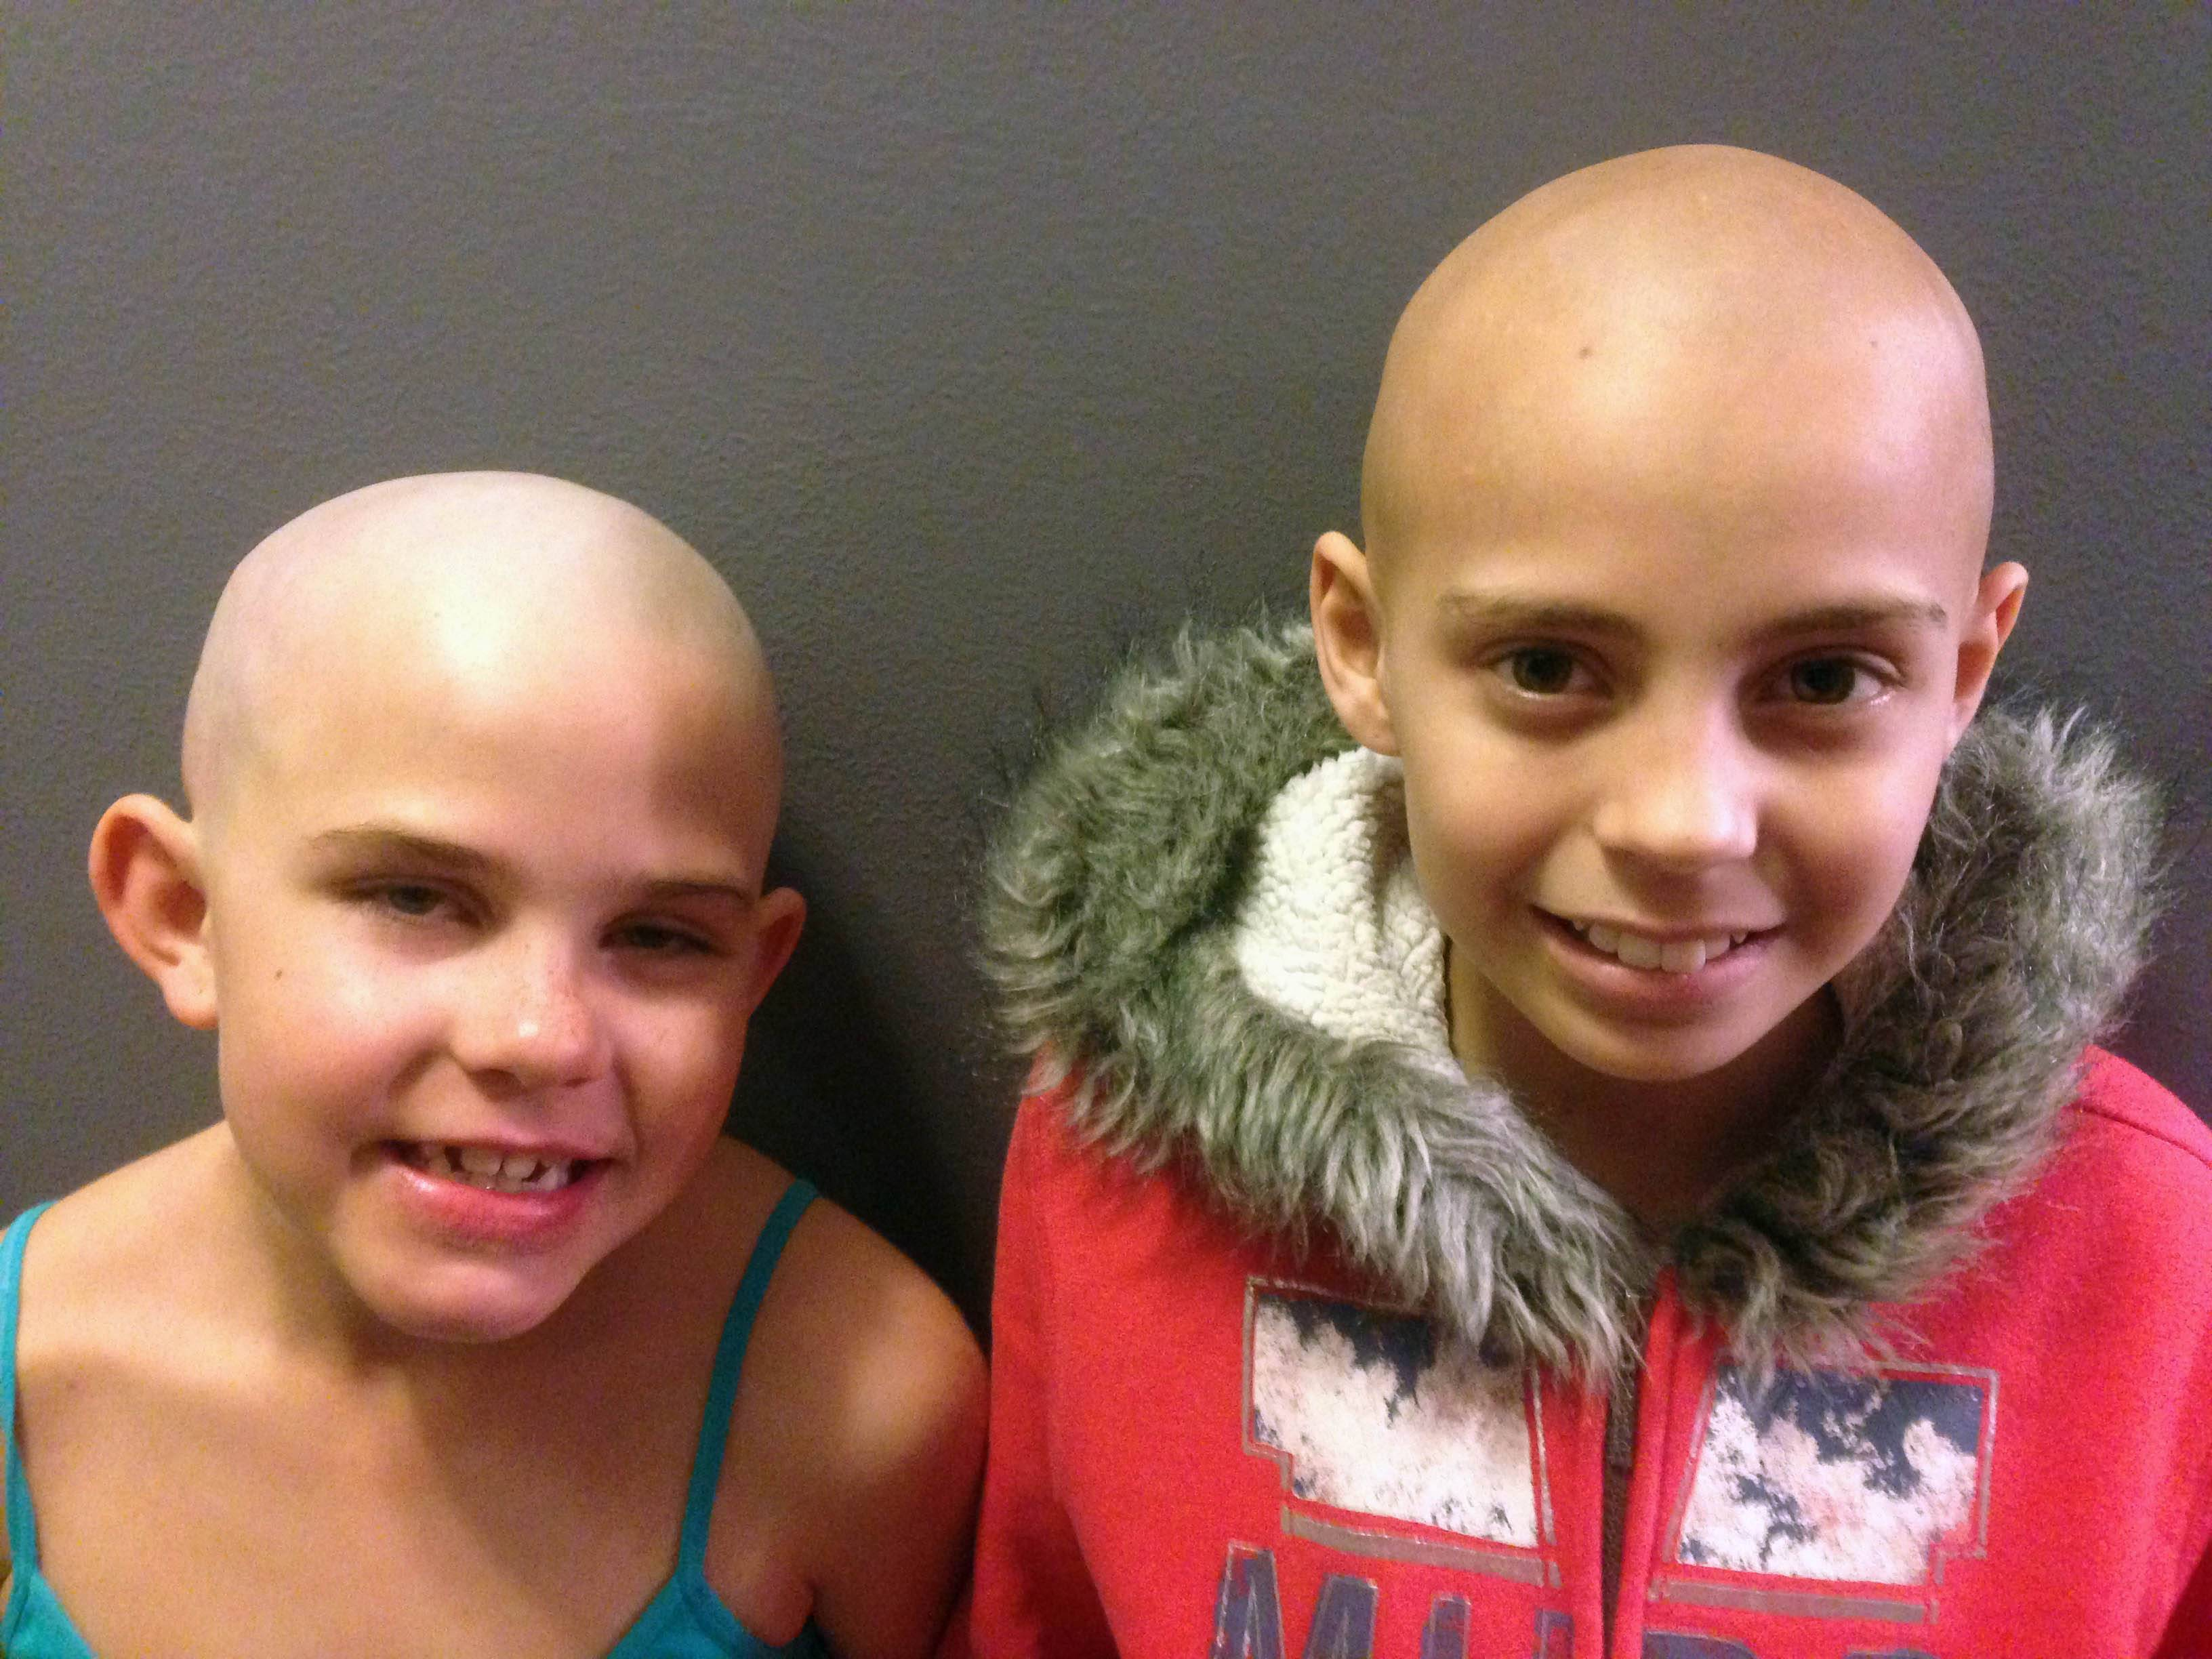 Kamryn Renfro, 9, left, and Delaney Clements, 11, right, stand together for a photo in Grand Junction, Colo., shortly after Kamryn had her head shaved to support Delaney, who lost her hair after treatment for cancer. Kamryn was suspended from her public charter school in Grand Junction because a shaved head goes against the school's dress code. But the school quickly reversed the decision.